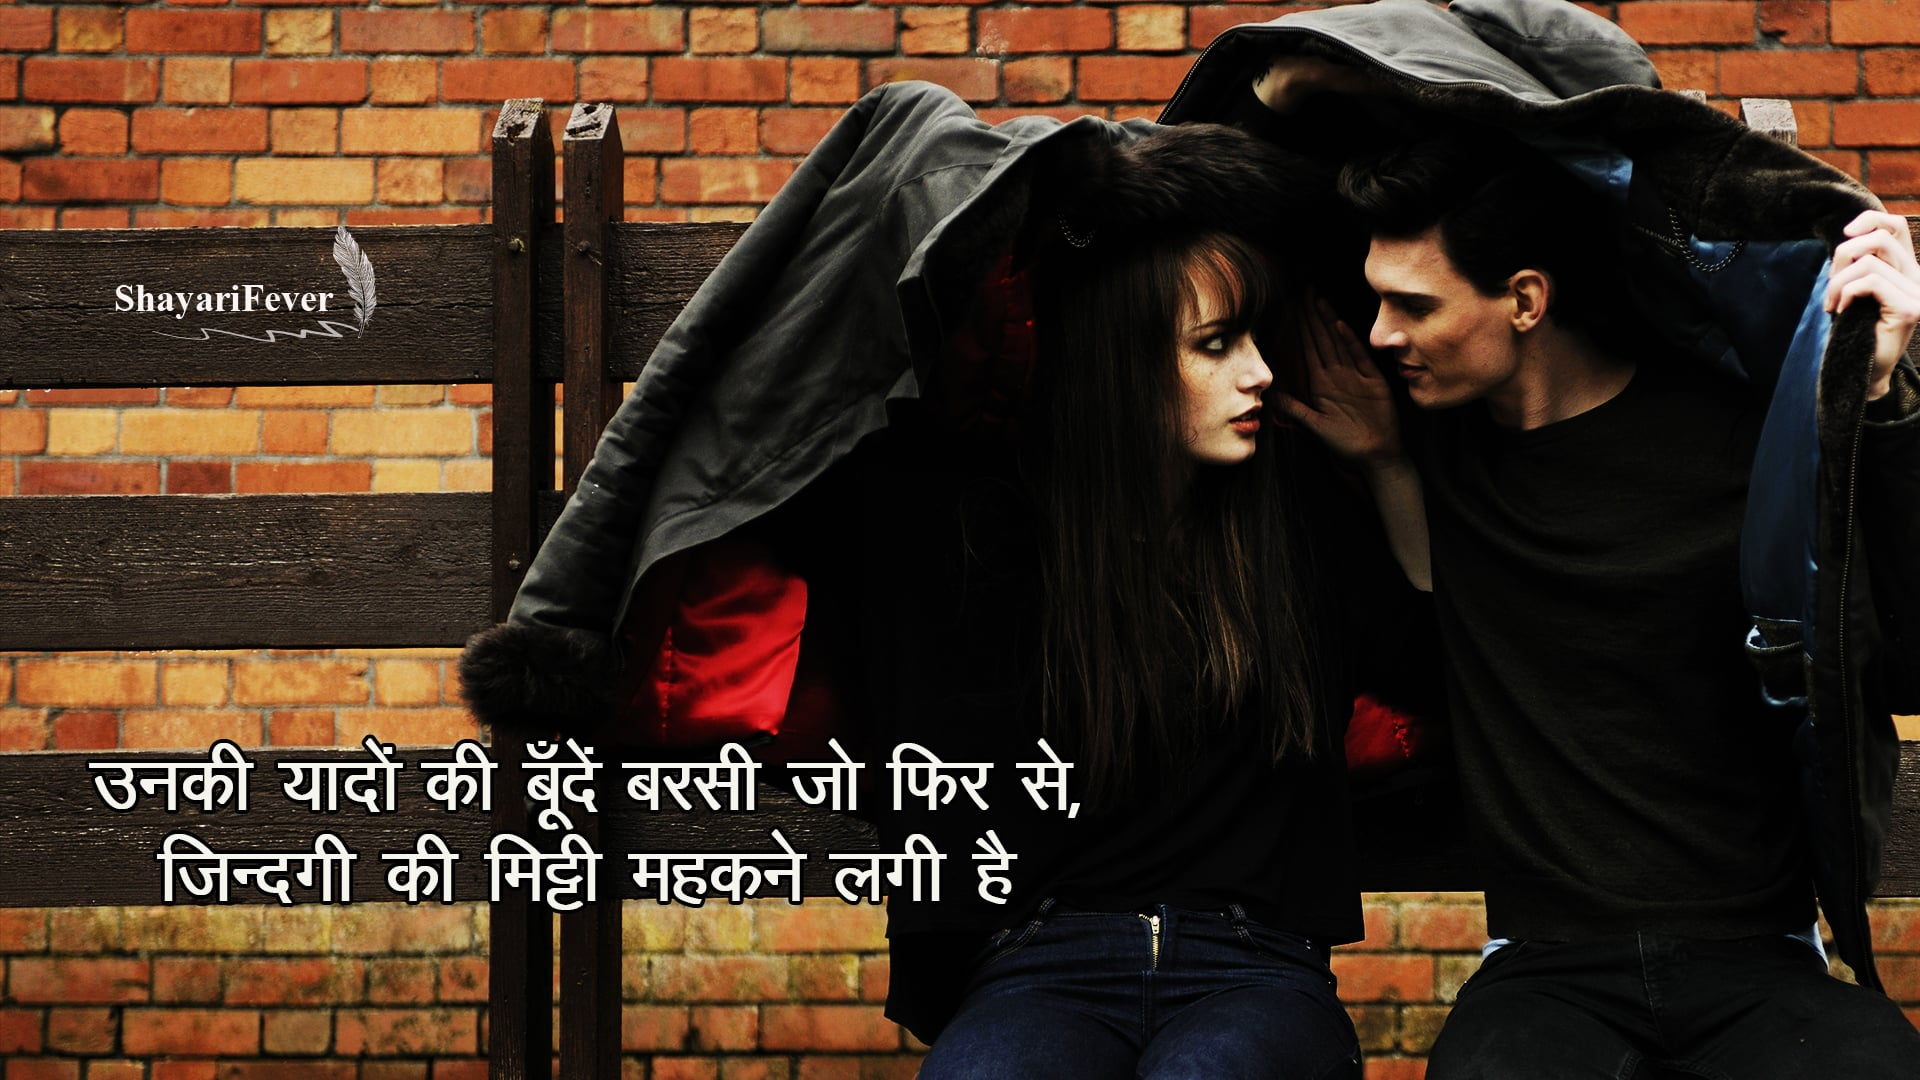 Barsaat Shayari For Boyfriend